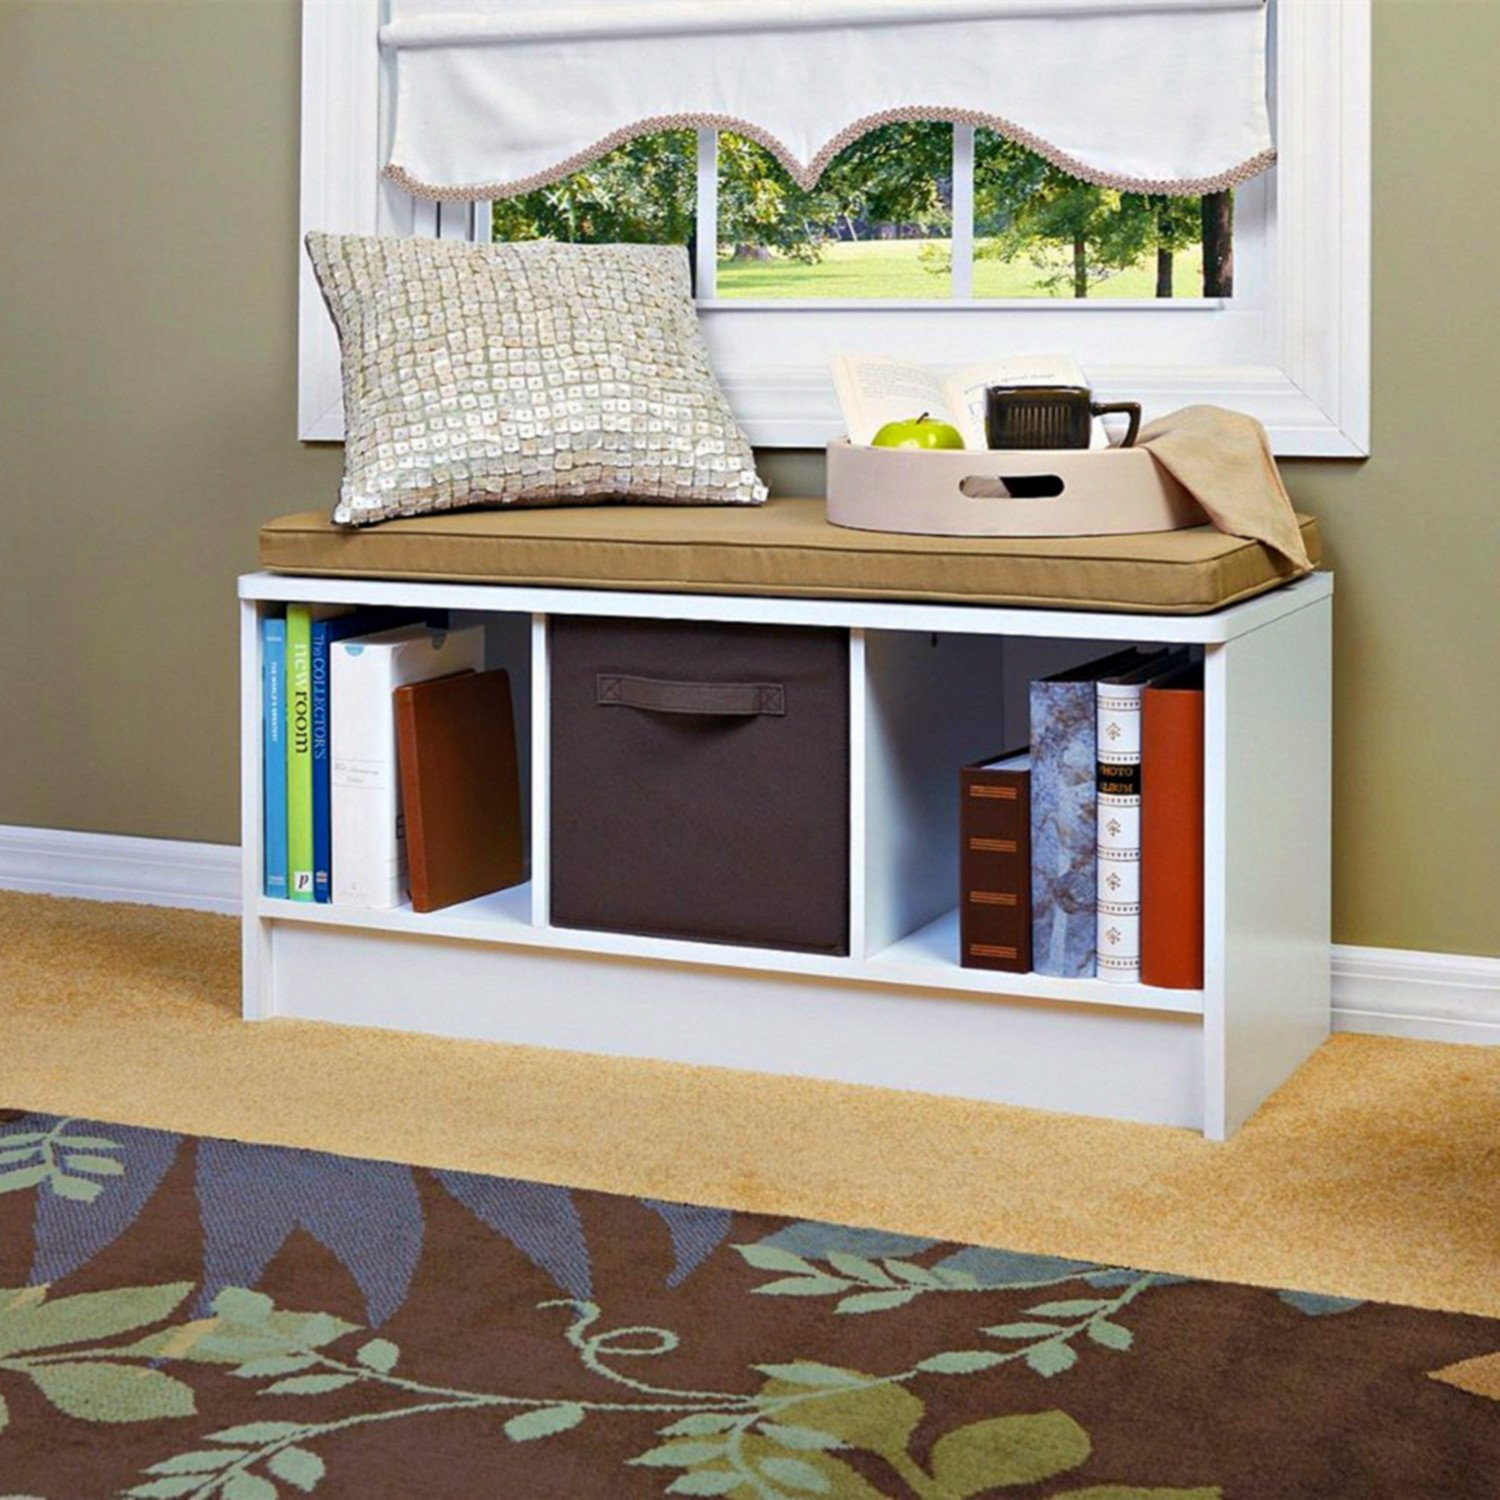 simple storage top organization real bench split cube white in pin